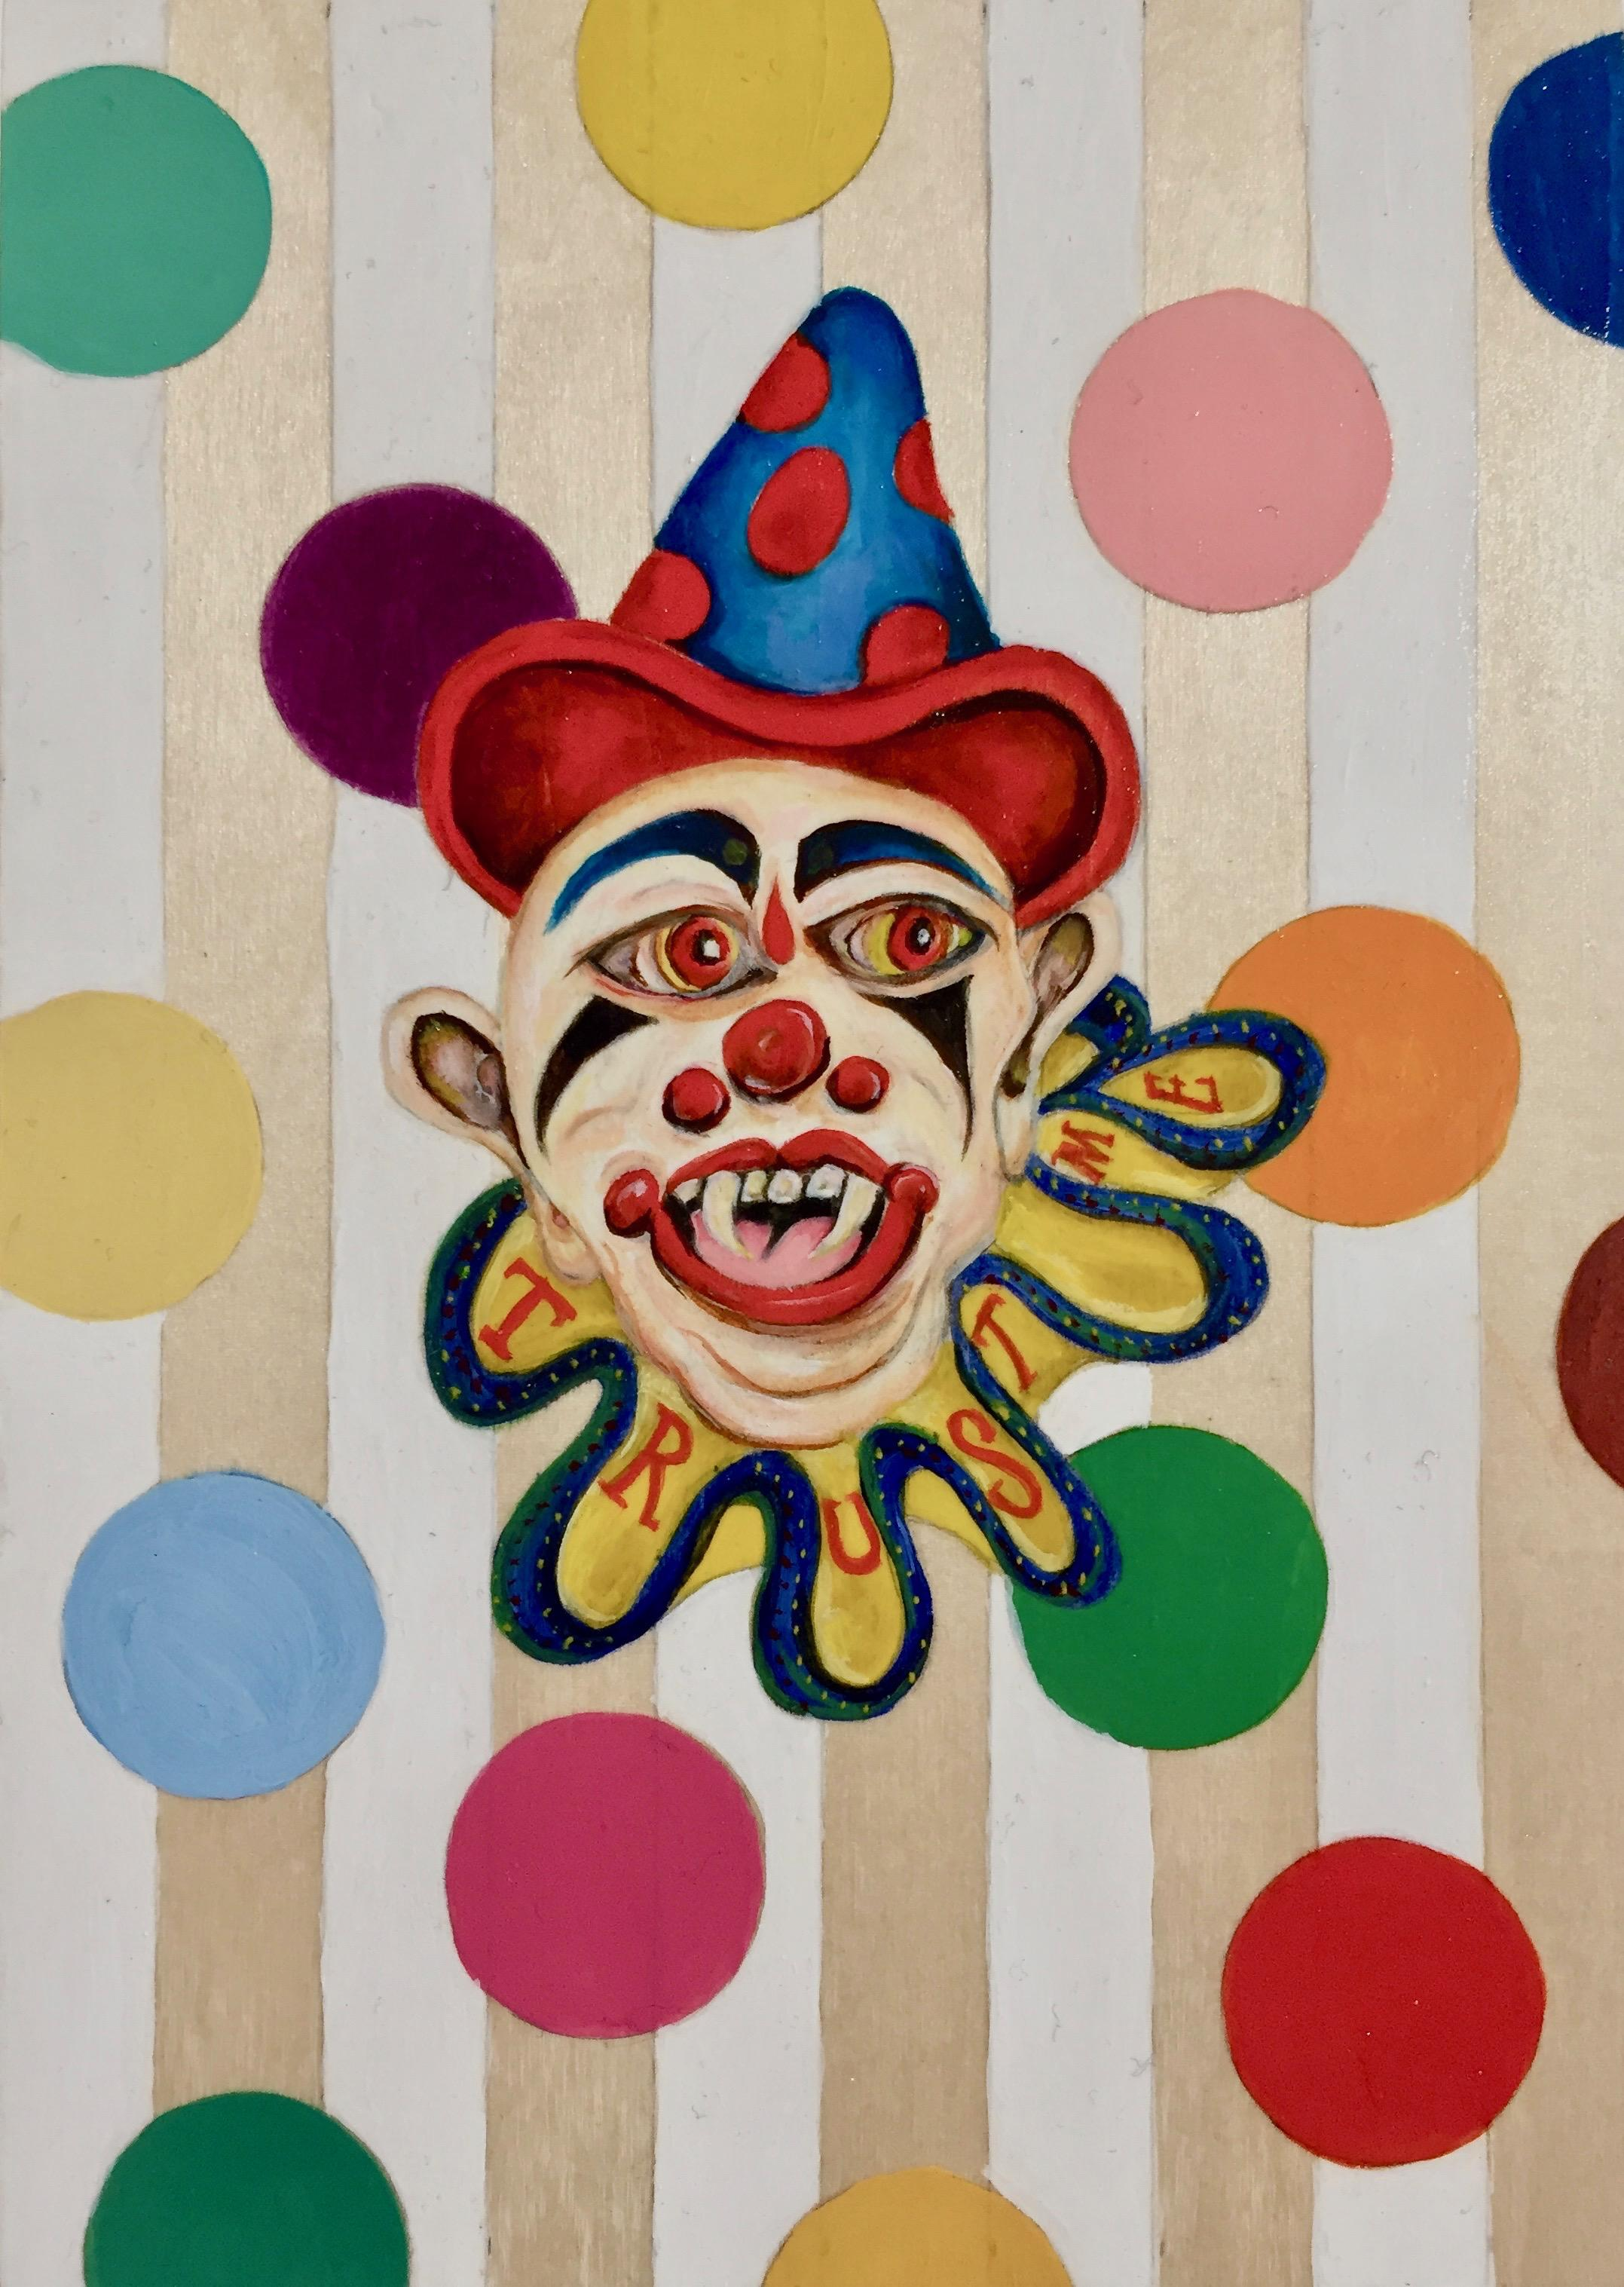 Clown Paintings - 107 For Sale on 1stdibs